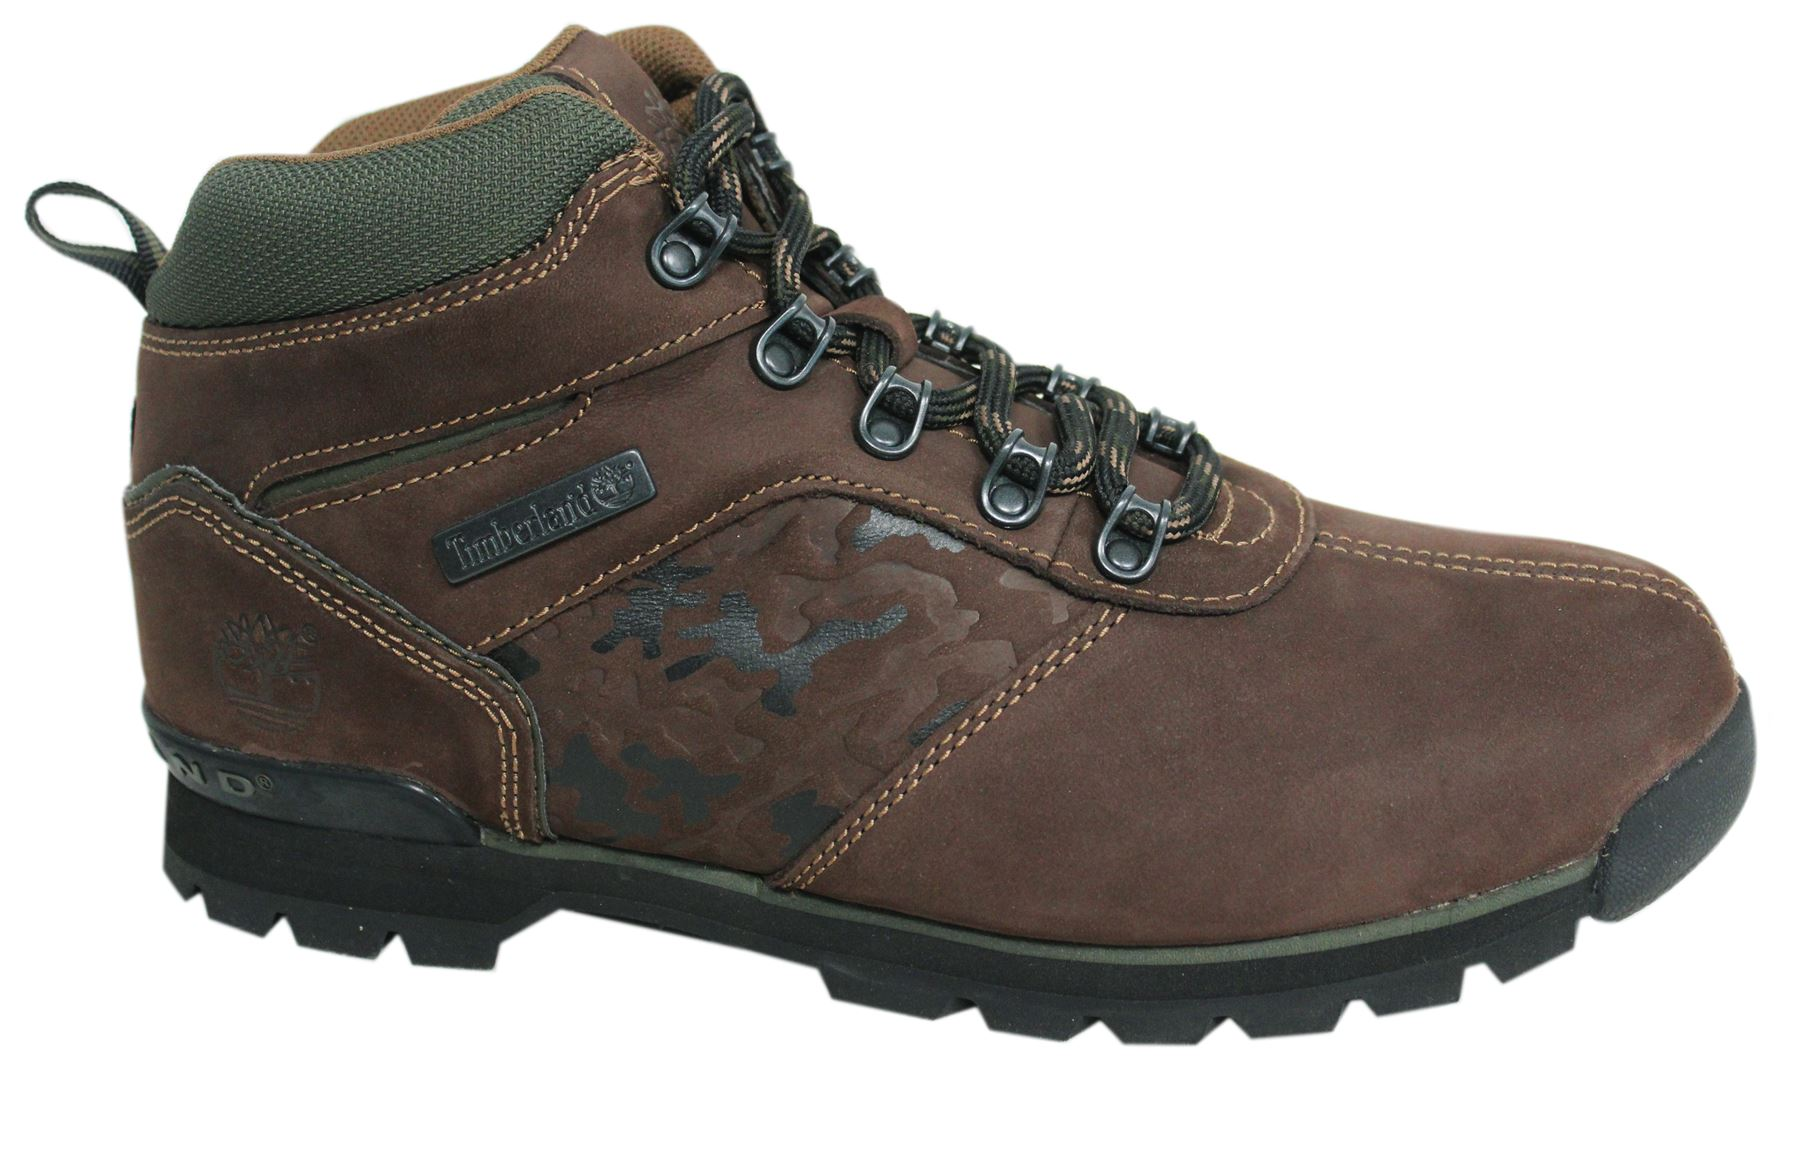 8a4f8108d408 Timberland Splitrock 2 Hiker Mens Lace Up Brown Hiking Boots Leather A15UG  T3